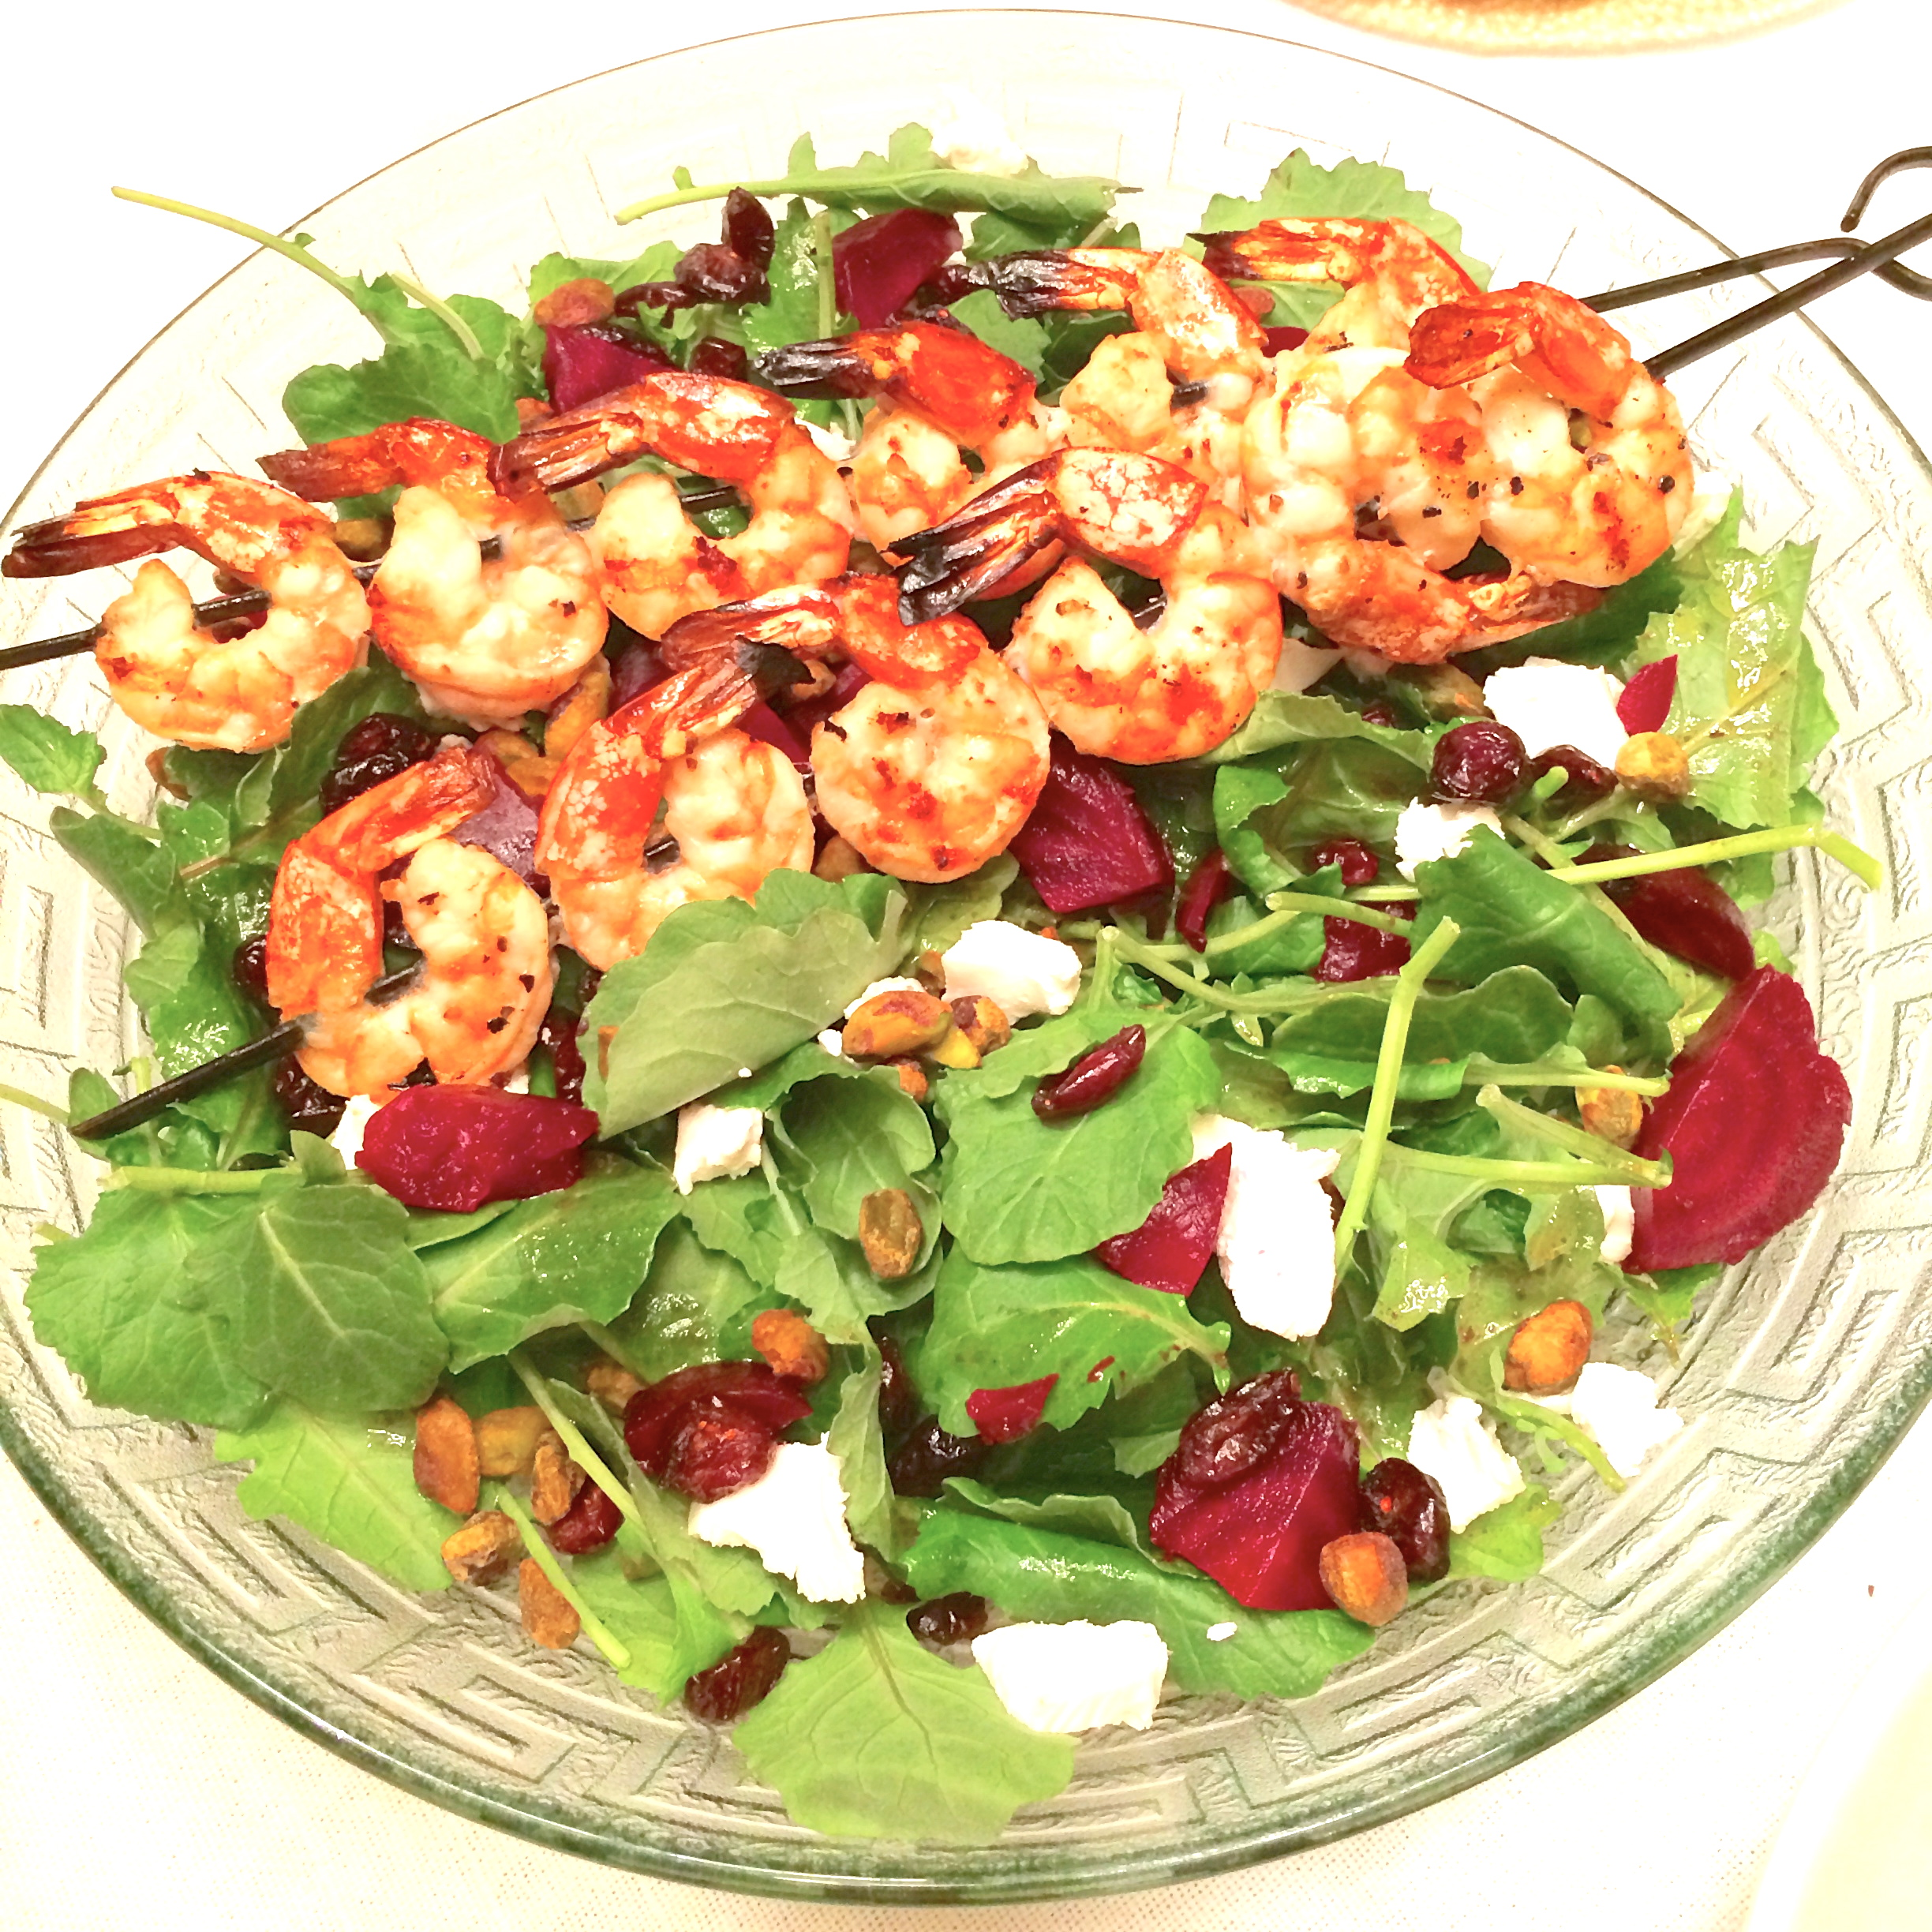 Yummy grain-free meal: grilled shrimp over baby greens, beets, pistachios, cranberries & goat cheese